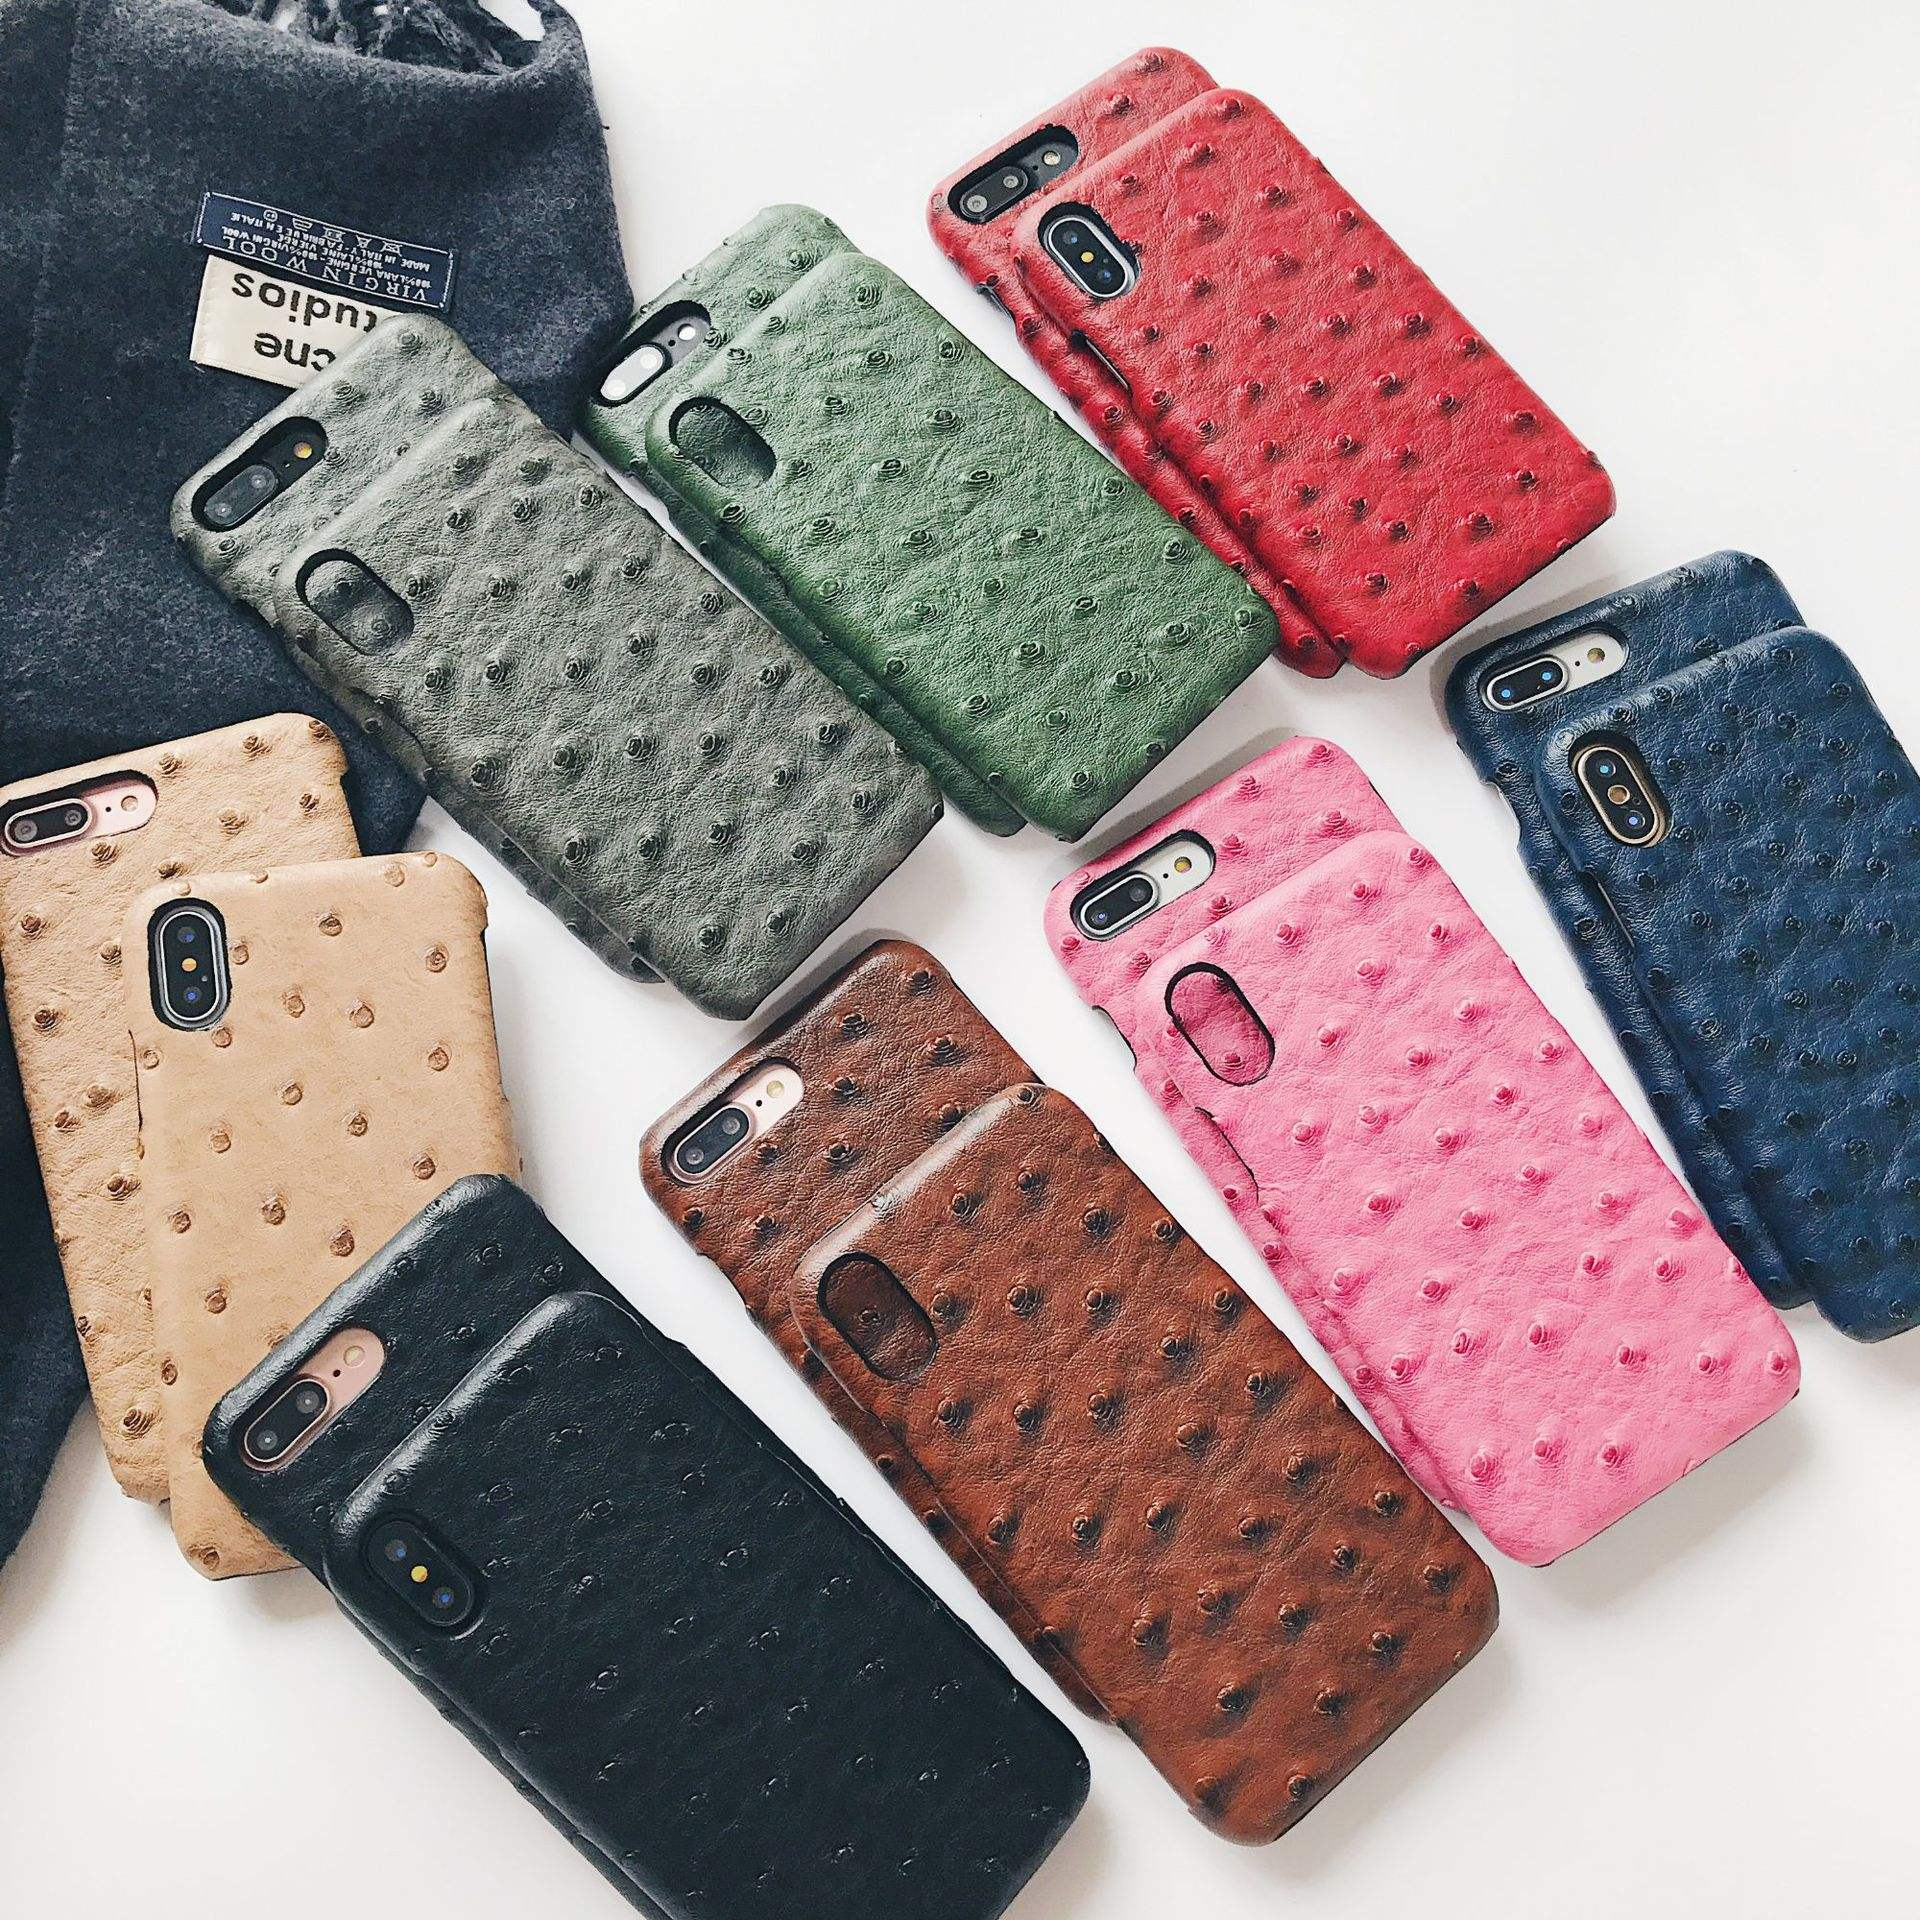 In Stock Ostrich Pattern Leather Back Phone Case for iPhone X XS XR XS Max, for iPhone XS Max Leather Back Case